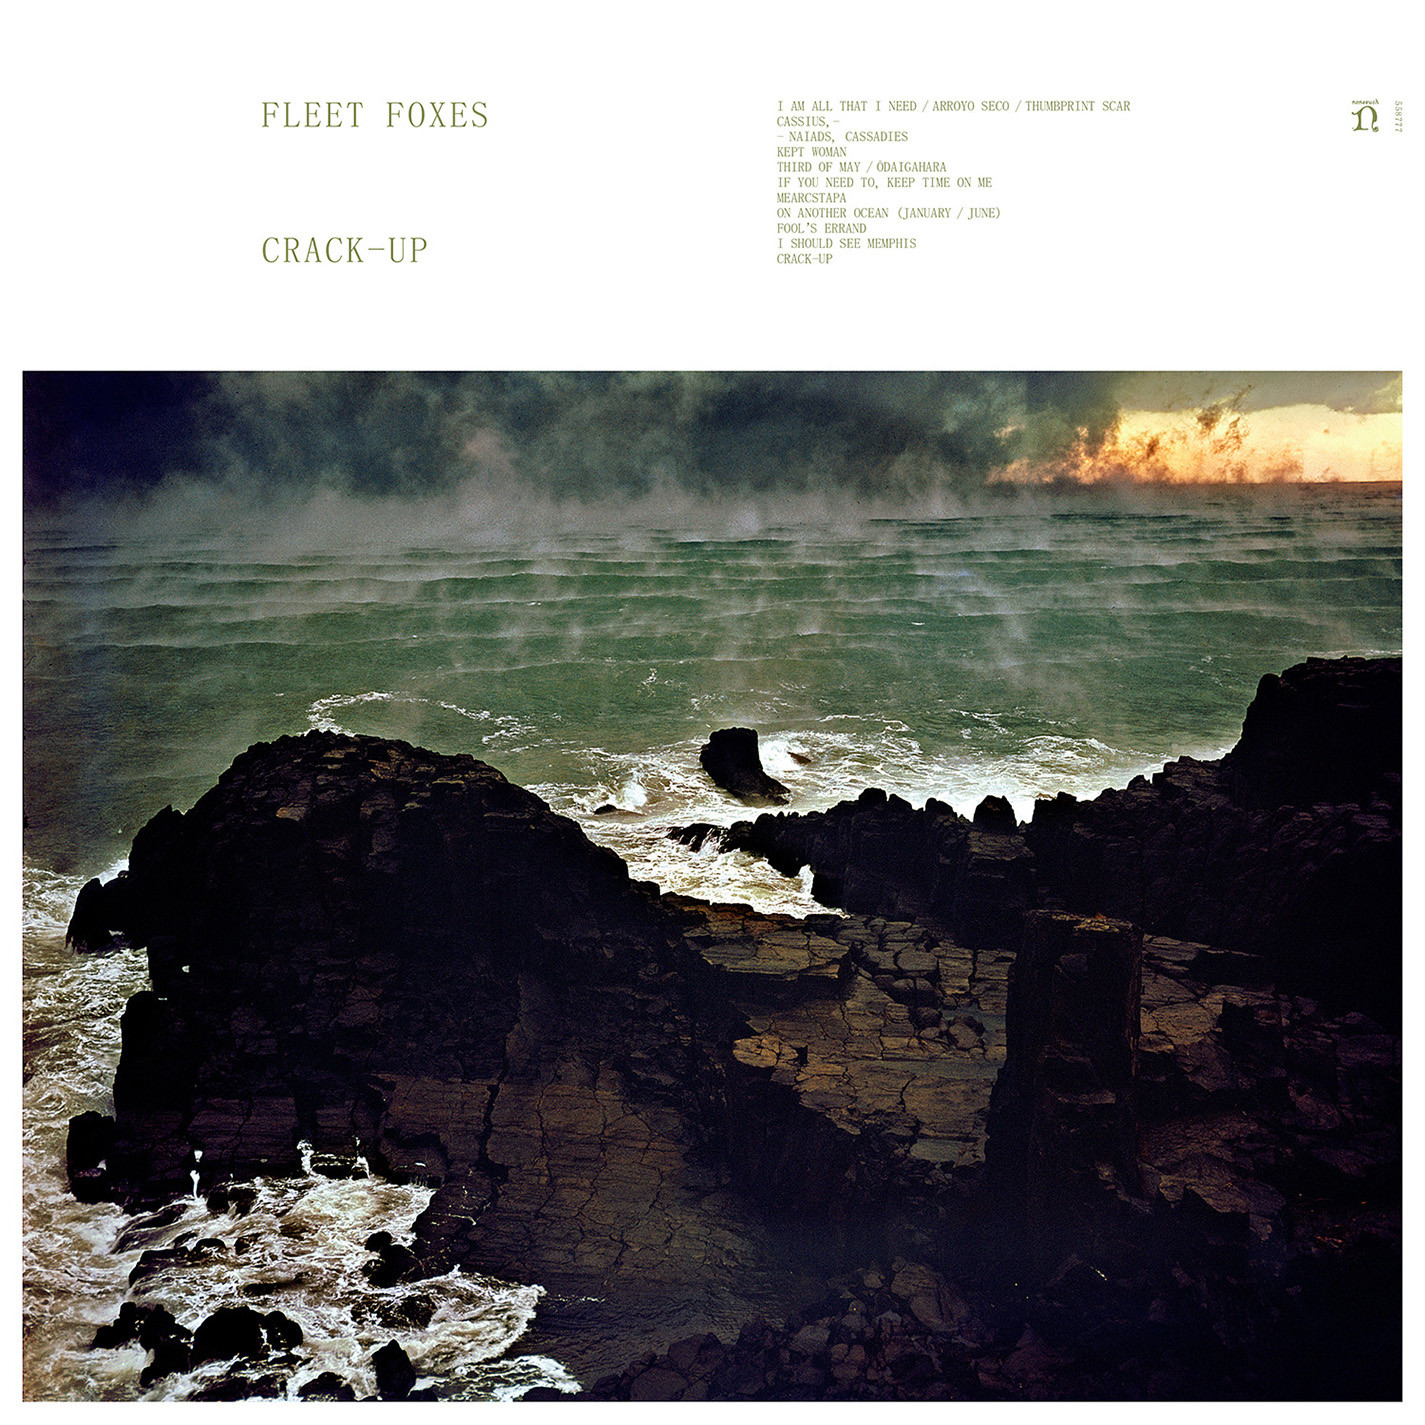 'The Crack-Up' by Fleet Foxes, album review by Adam Williams.